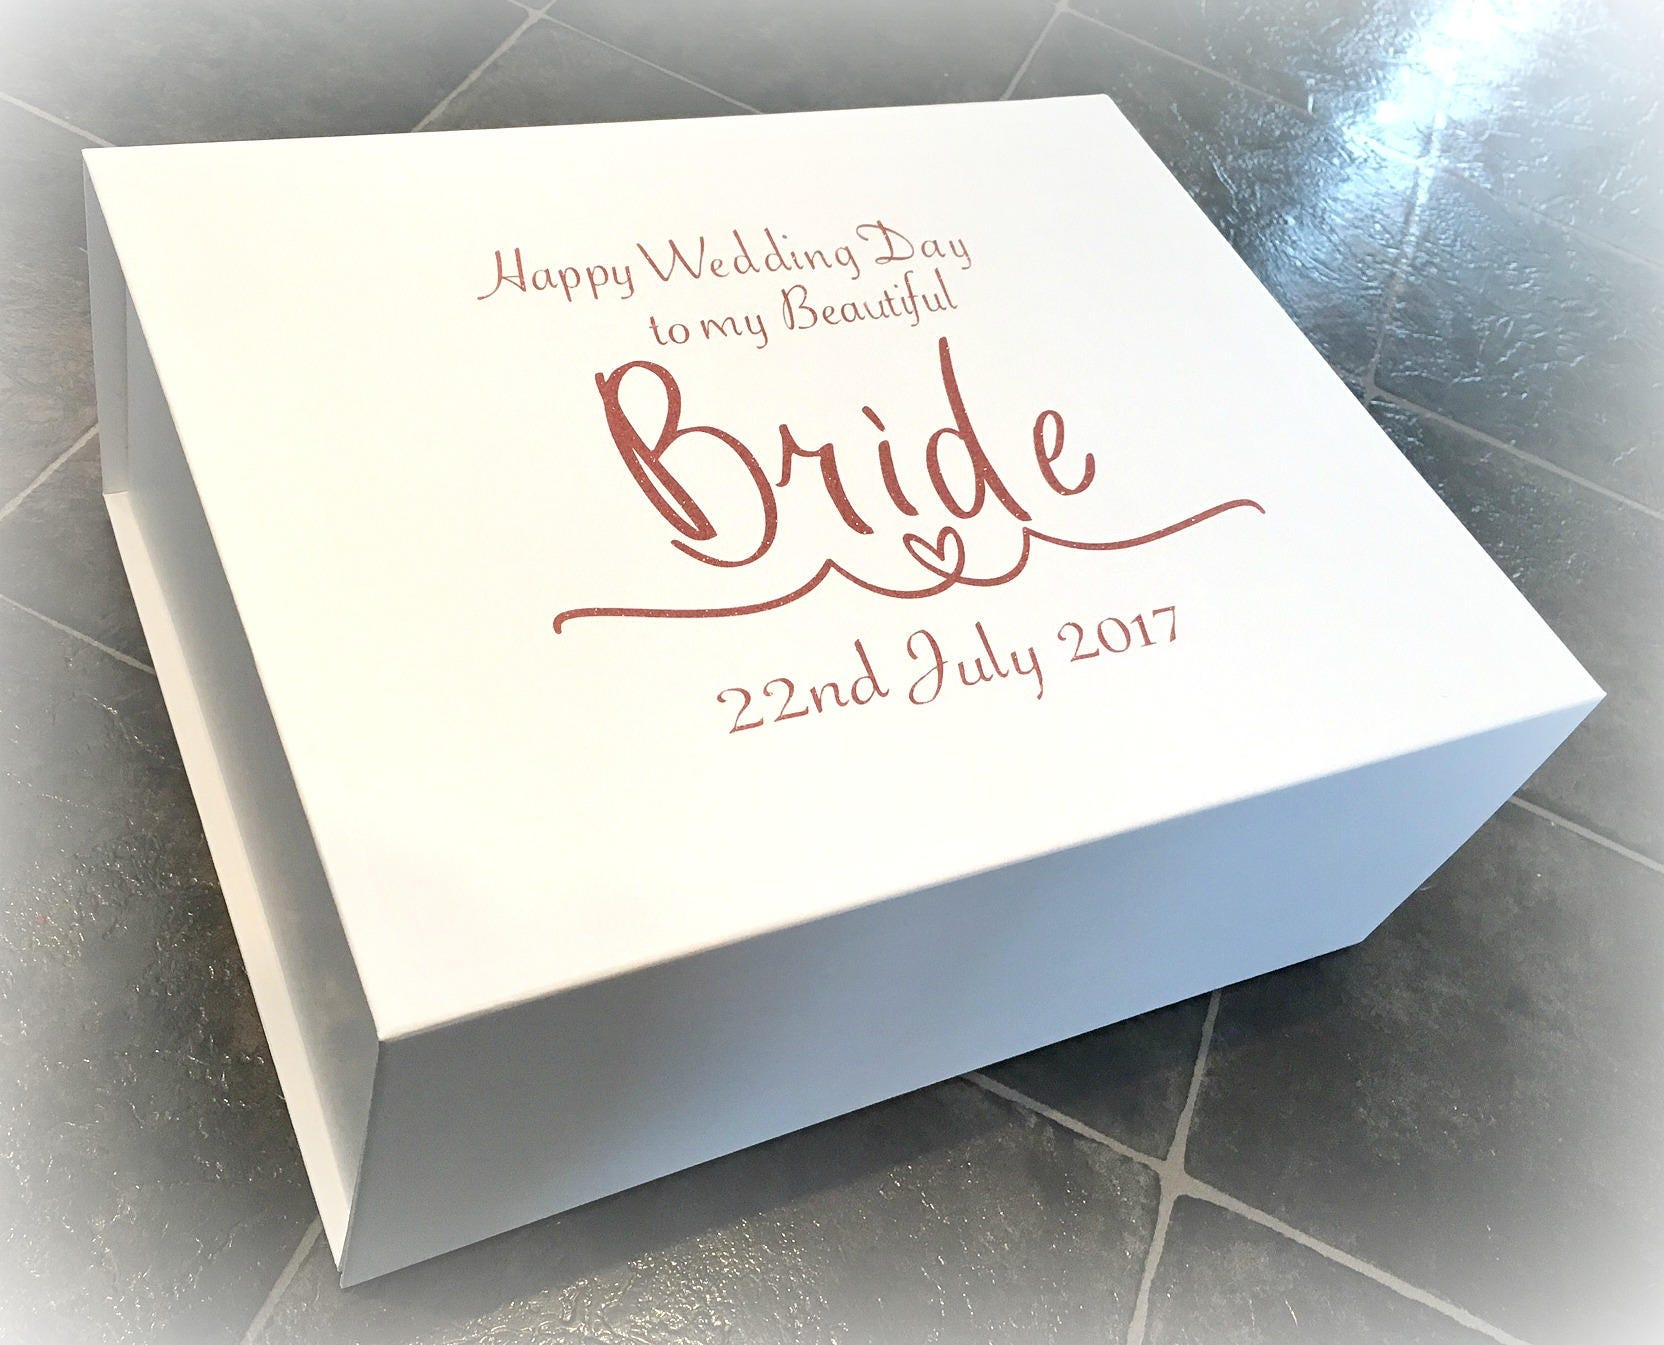 Wedding Planning Gift For Bride: Luxury Extra Large Bride Gift Box Wedding Morning Bride Box